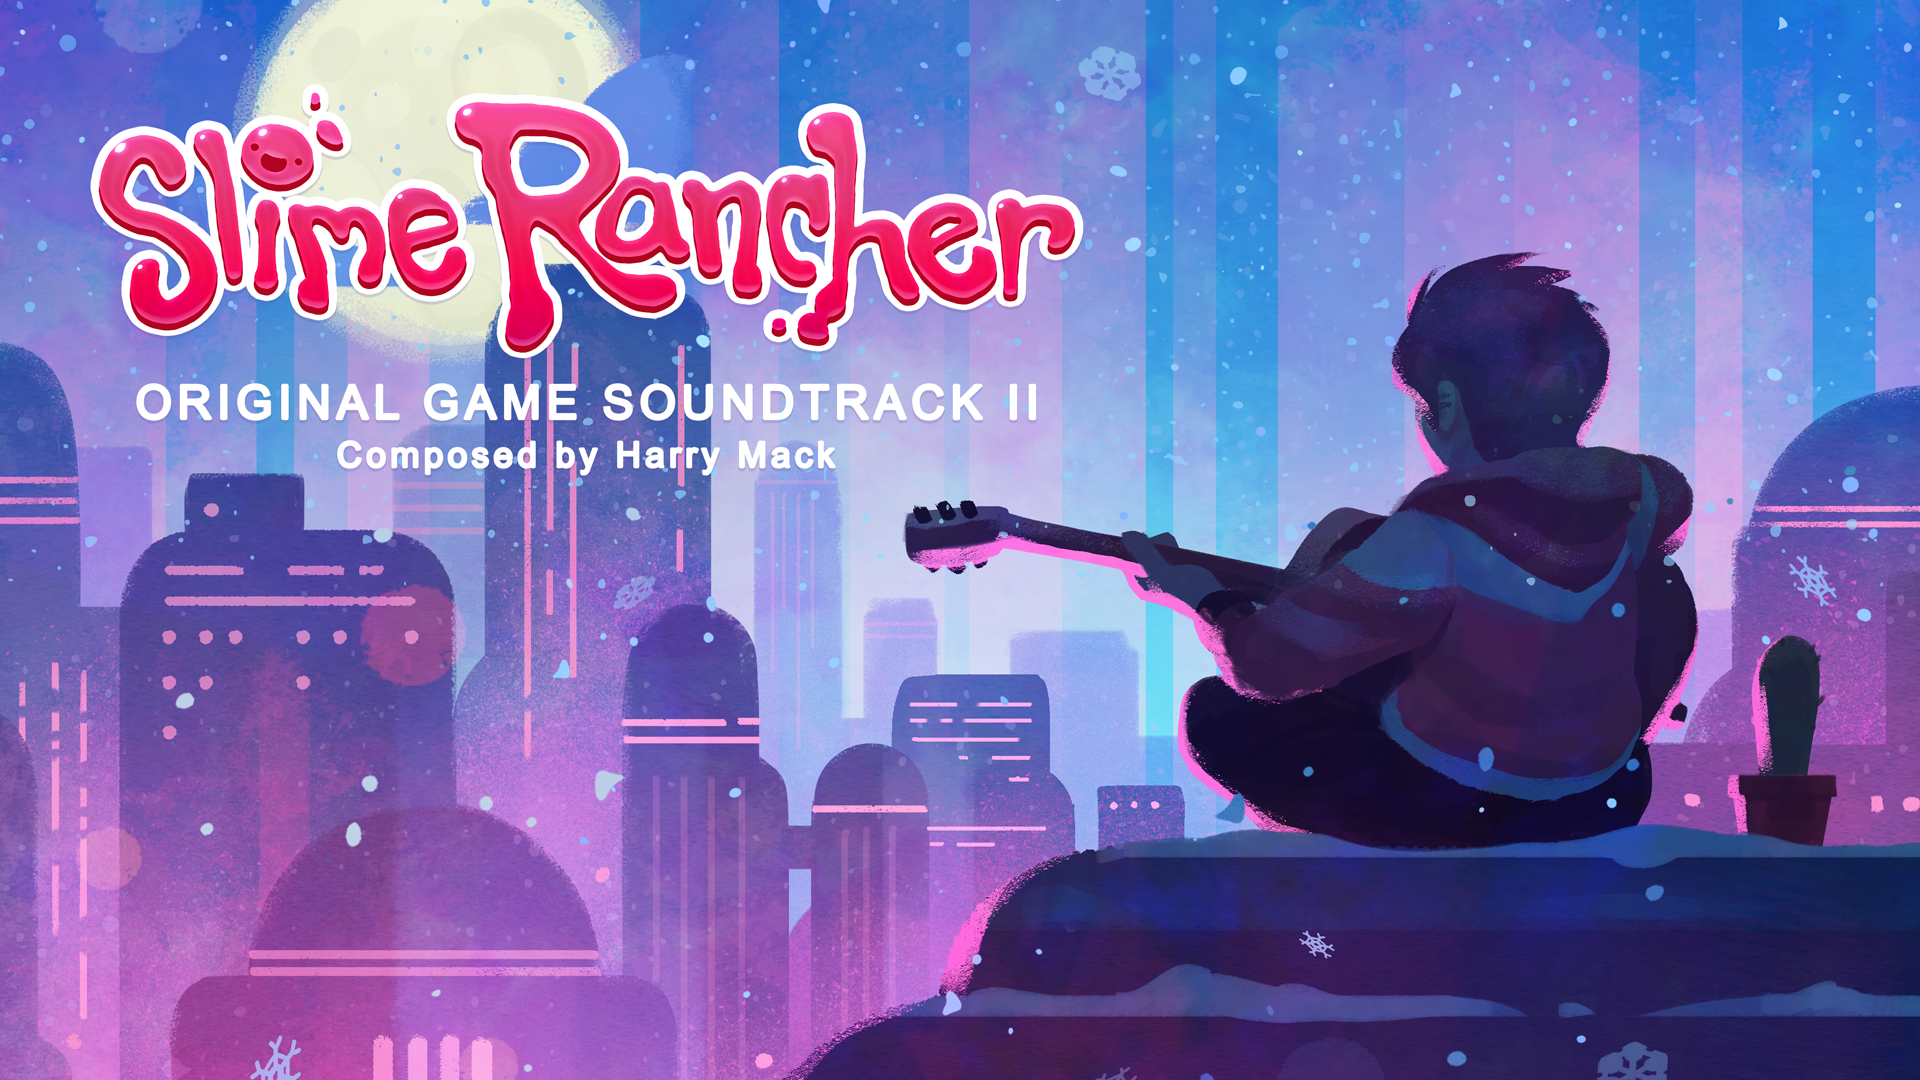 The Original Soundtrack II is Now Available!